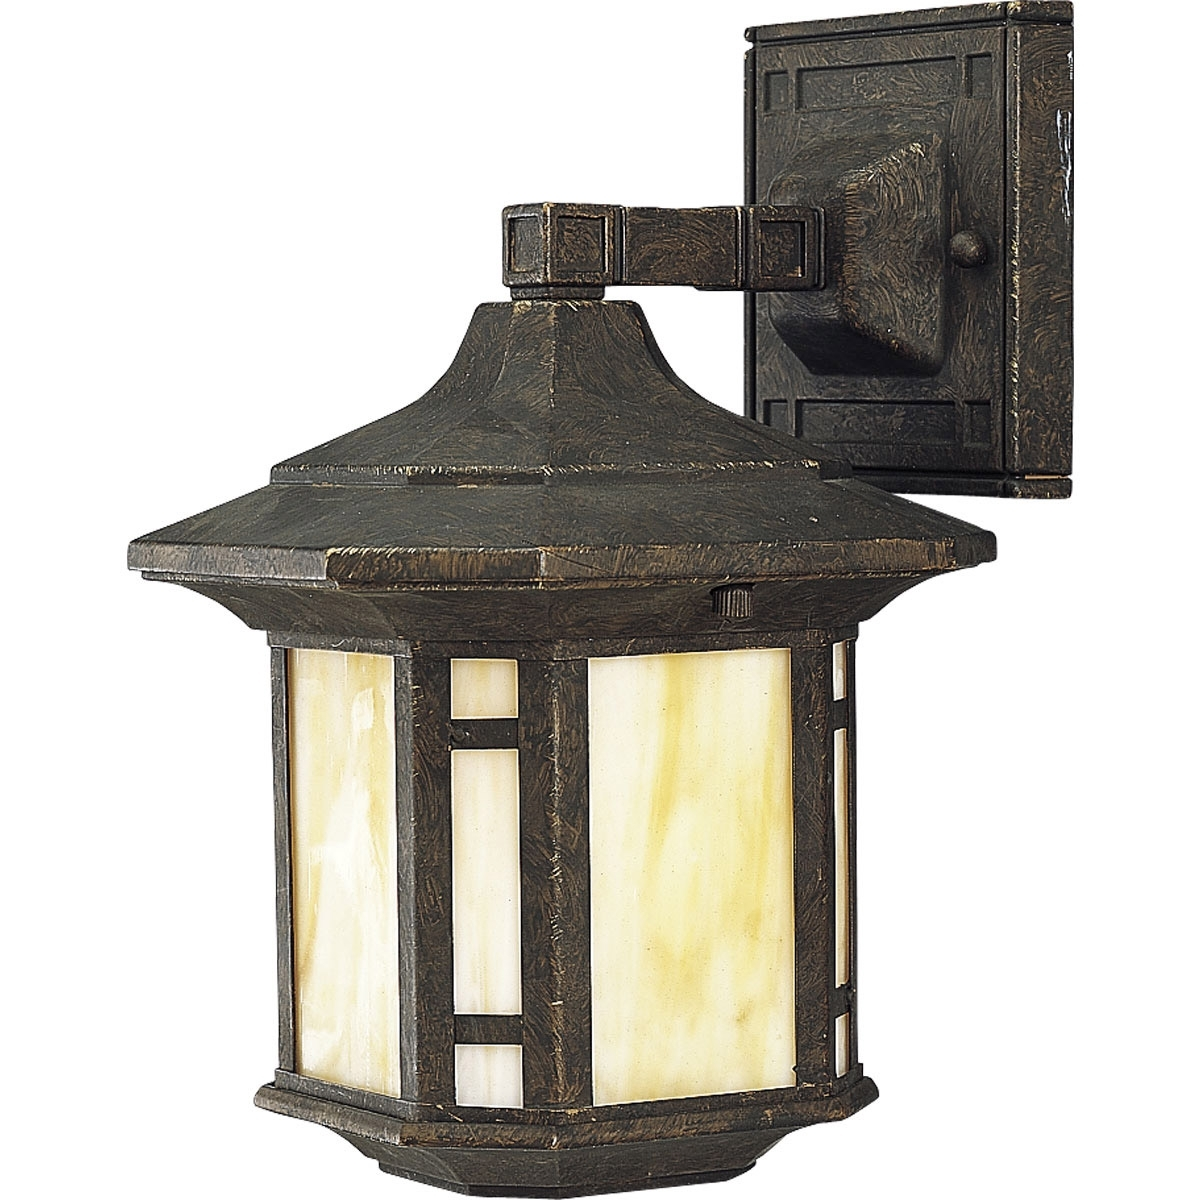 Most Popular Arts And Crafts Outdoor Wall Lighting Within Lighting P5628 46 Arts And Crafts Outdoor Wall Mount Lantern (View 3 of 20)